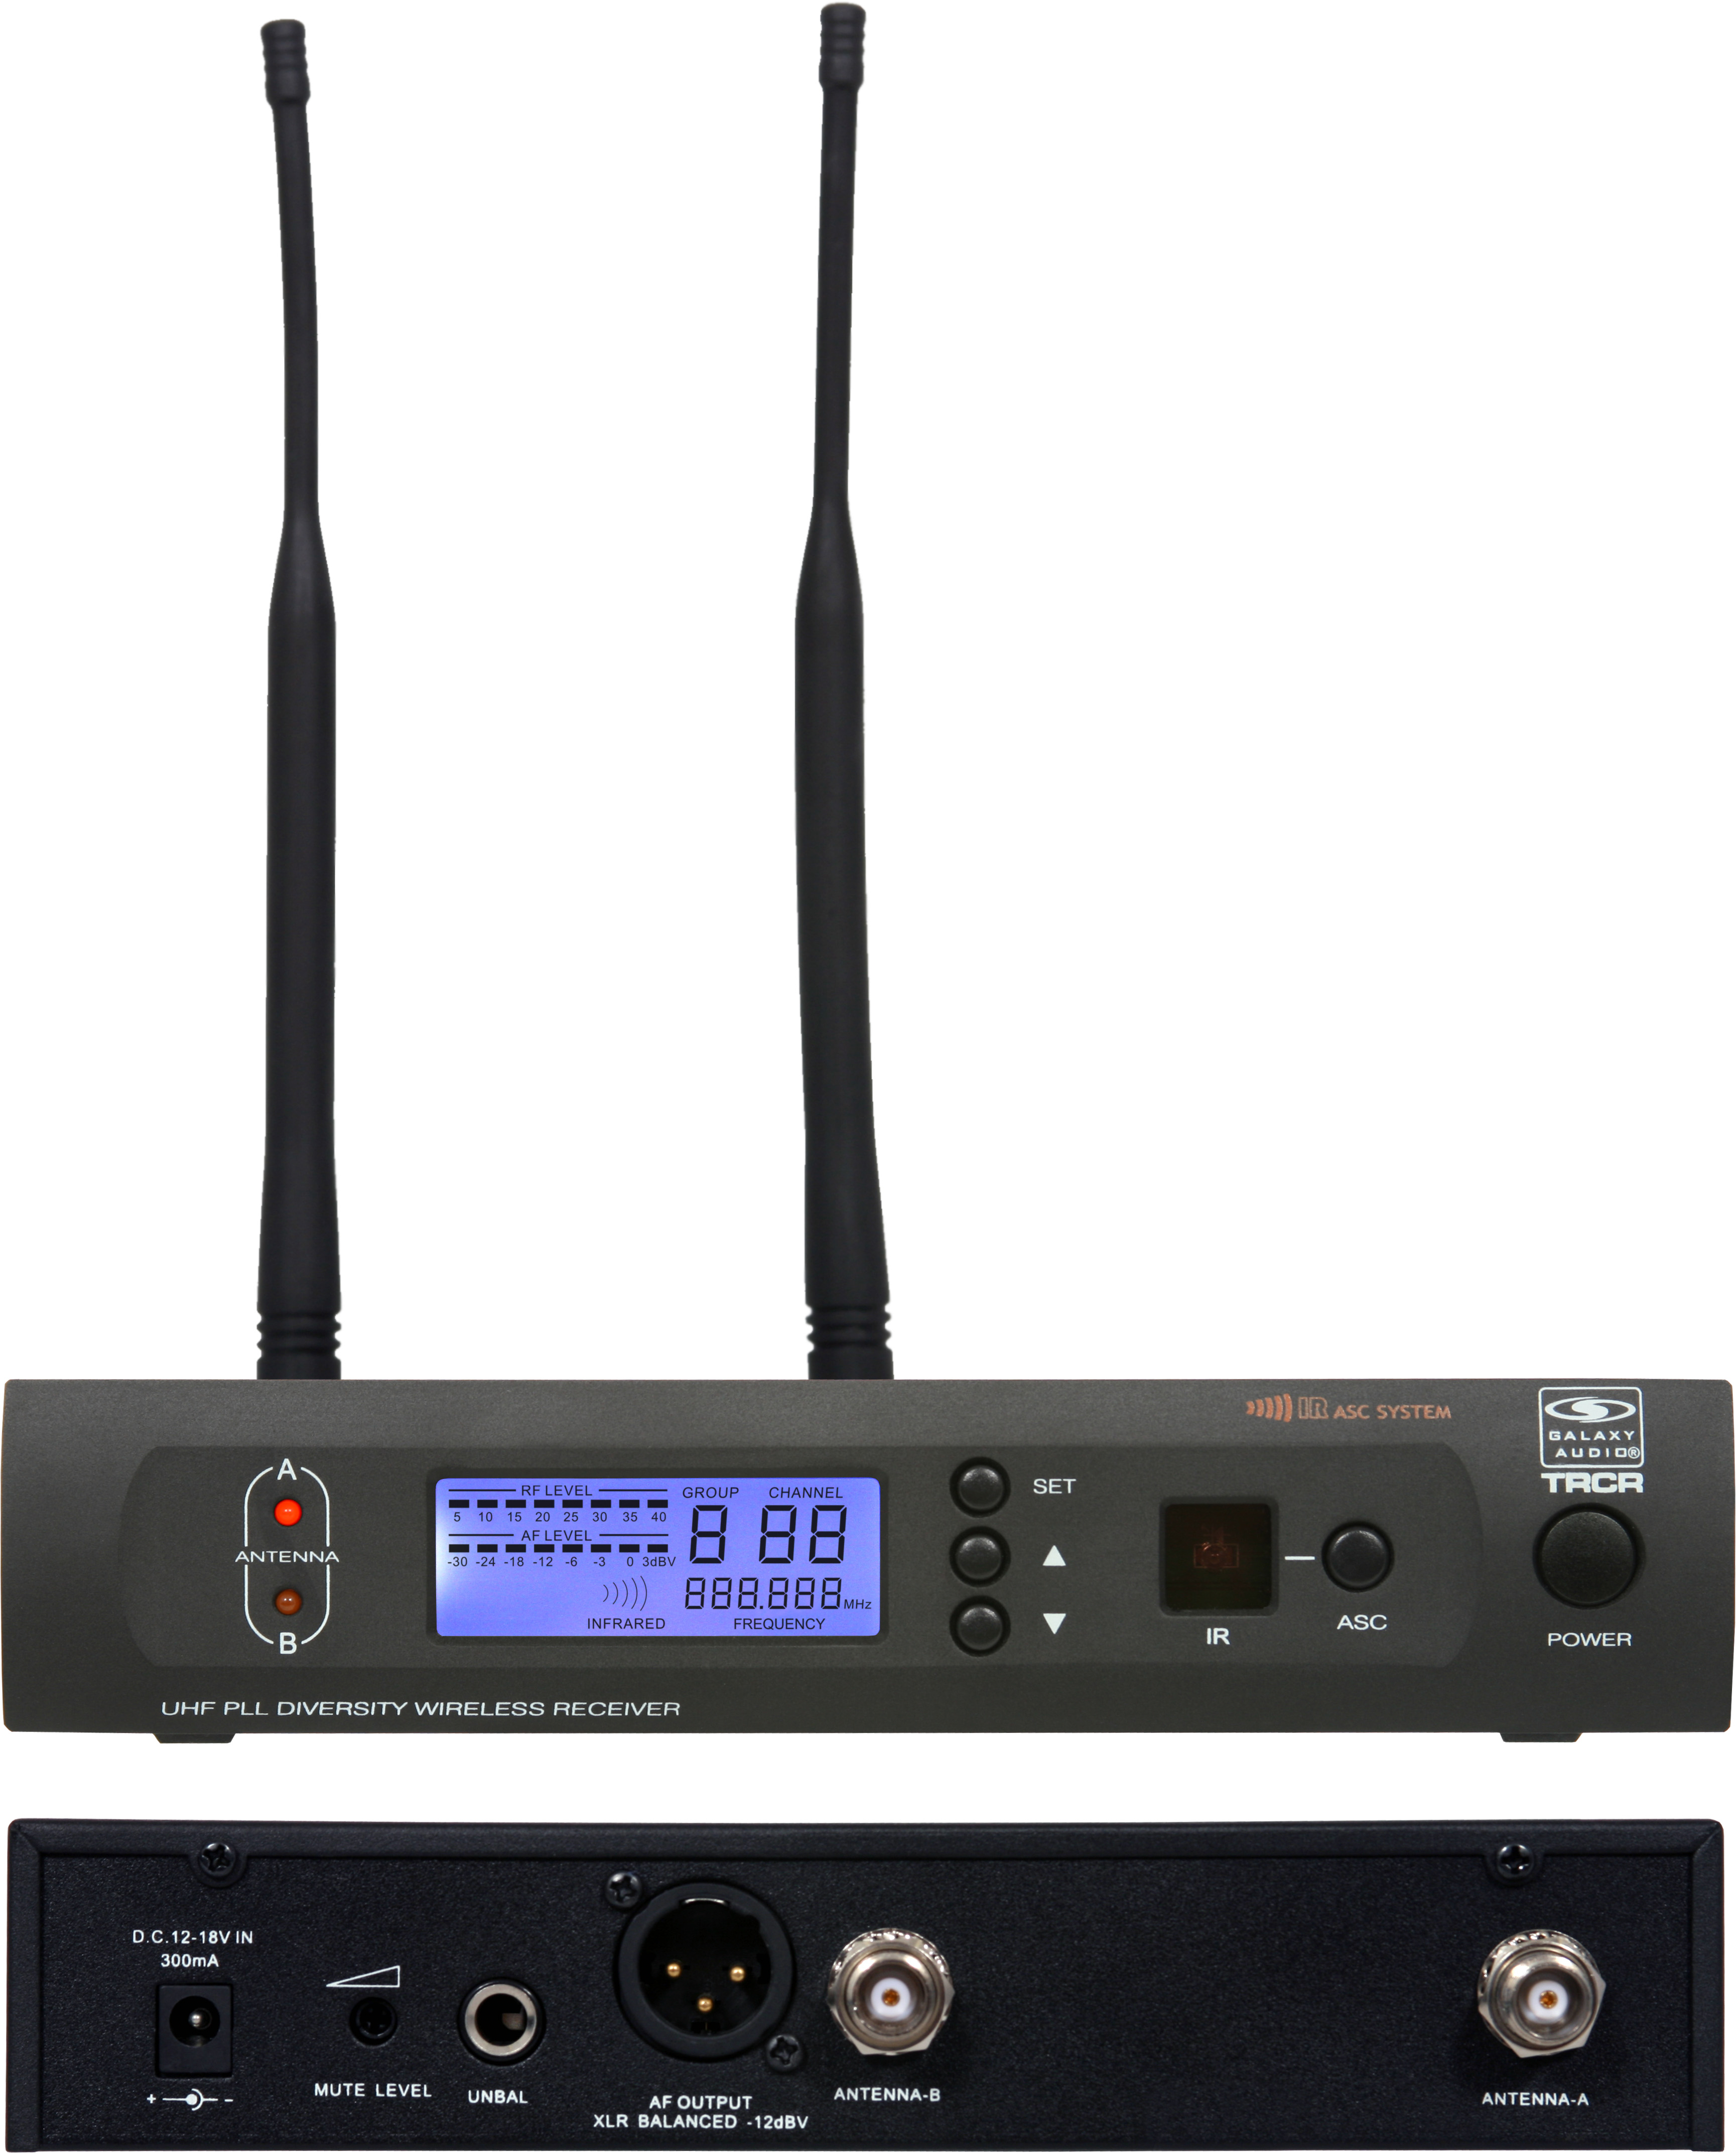 Galaxy Audio TRCR/64 Wireless Microphone System with MBP64 Body Pack Transmitter